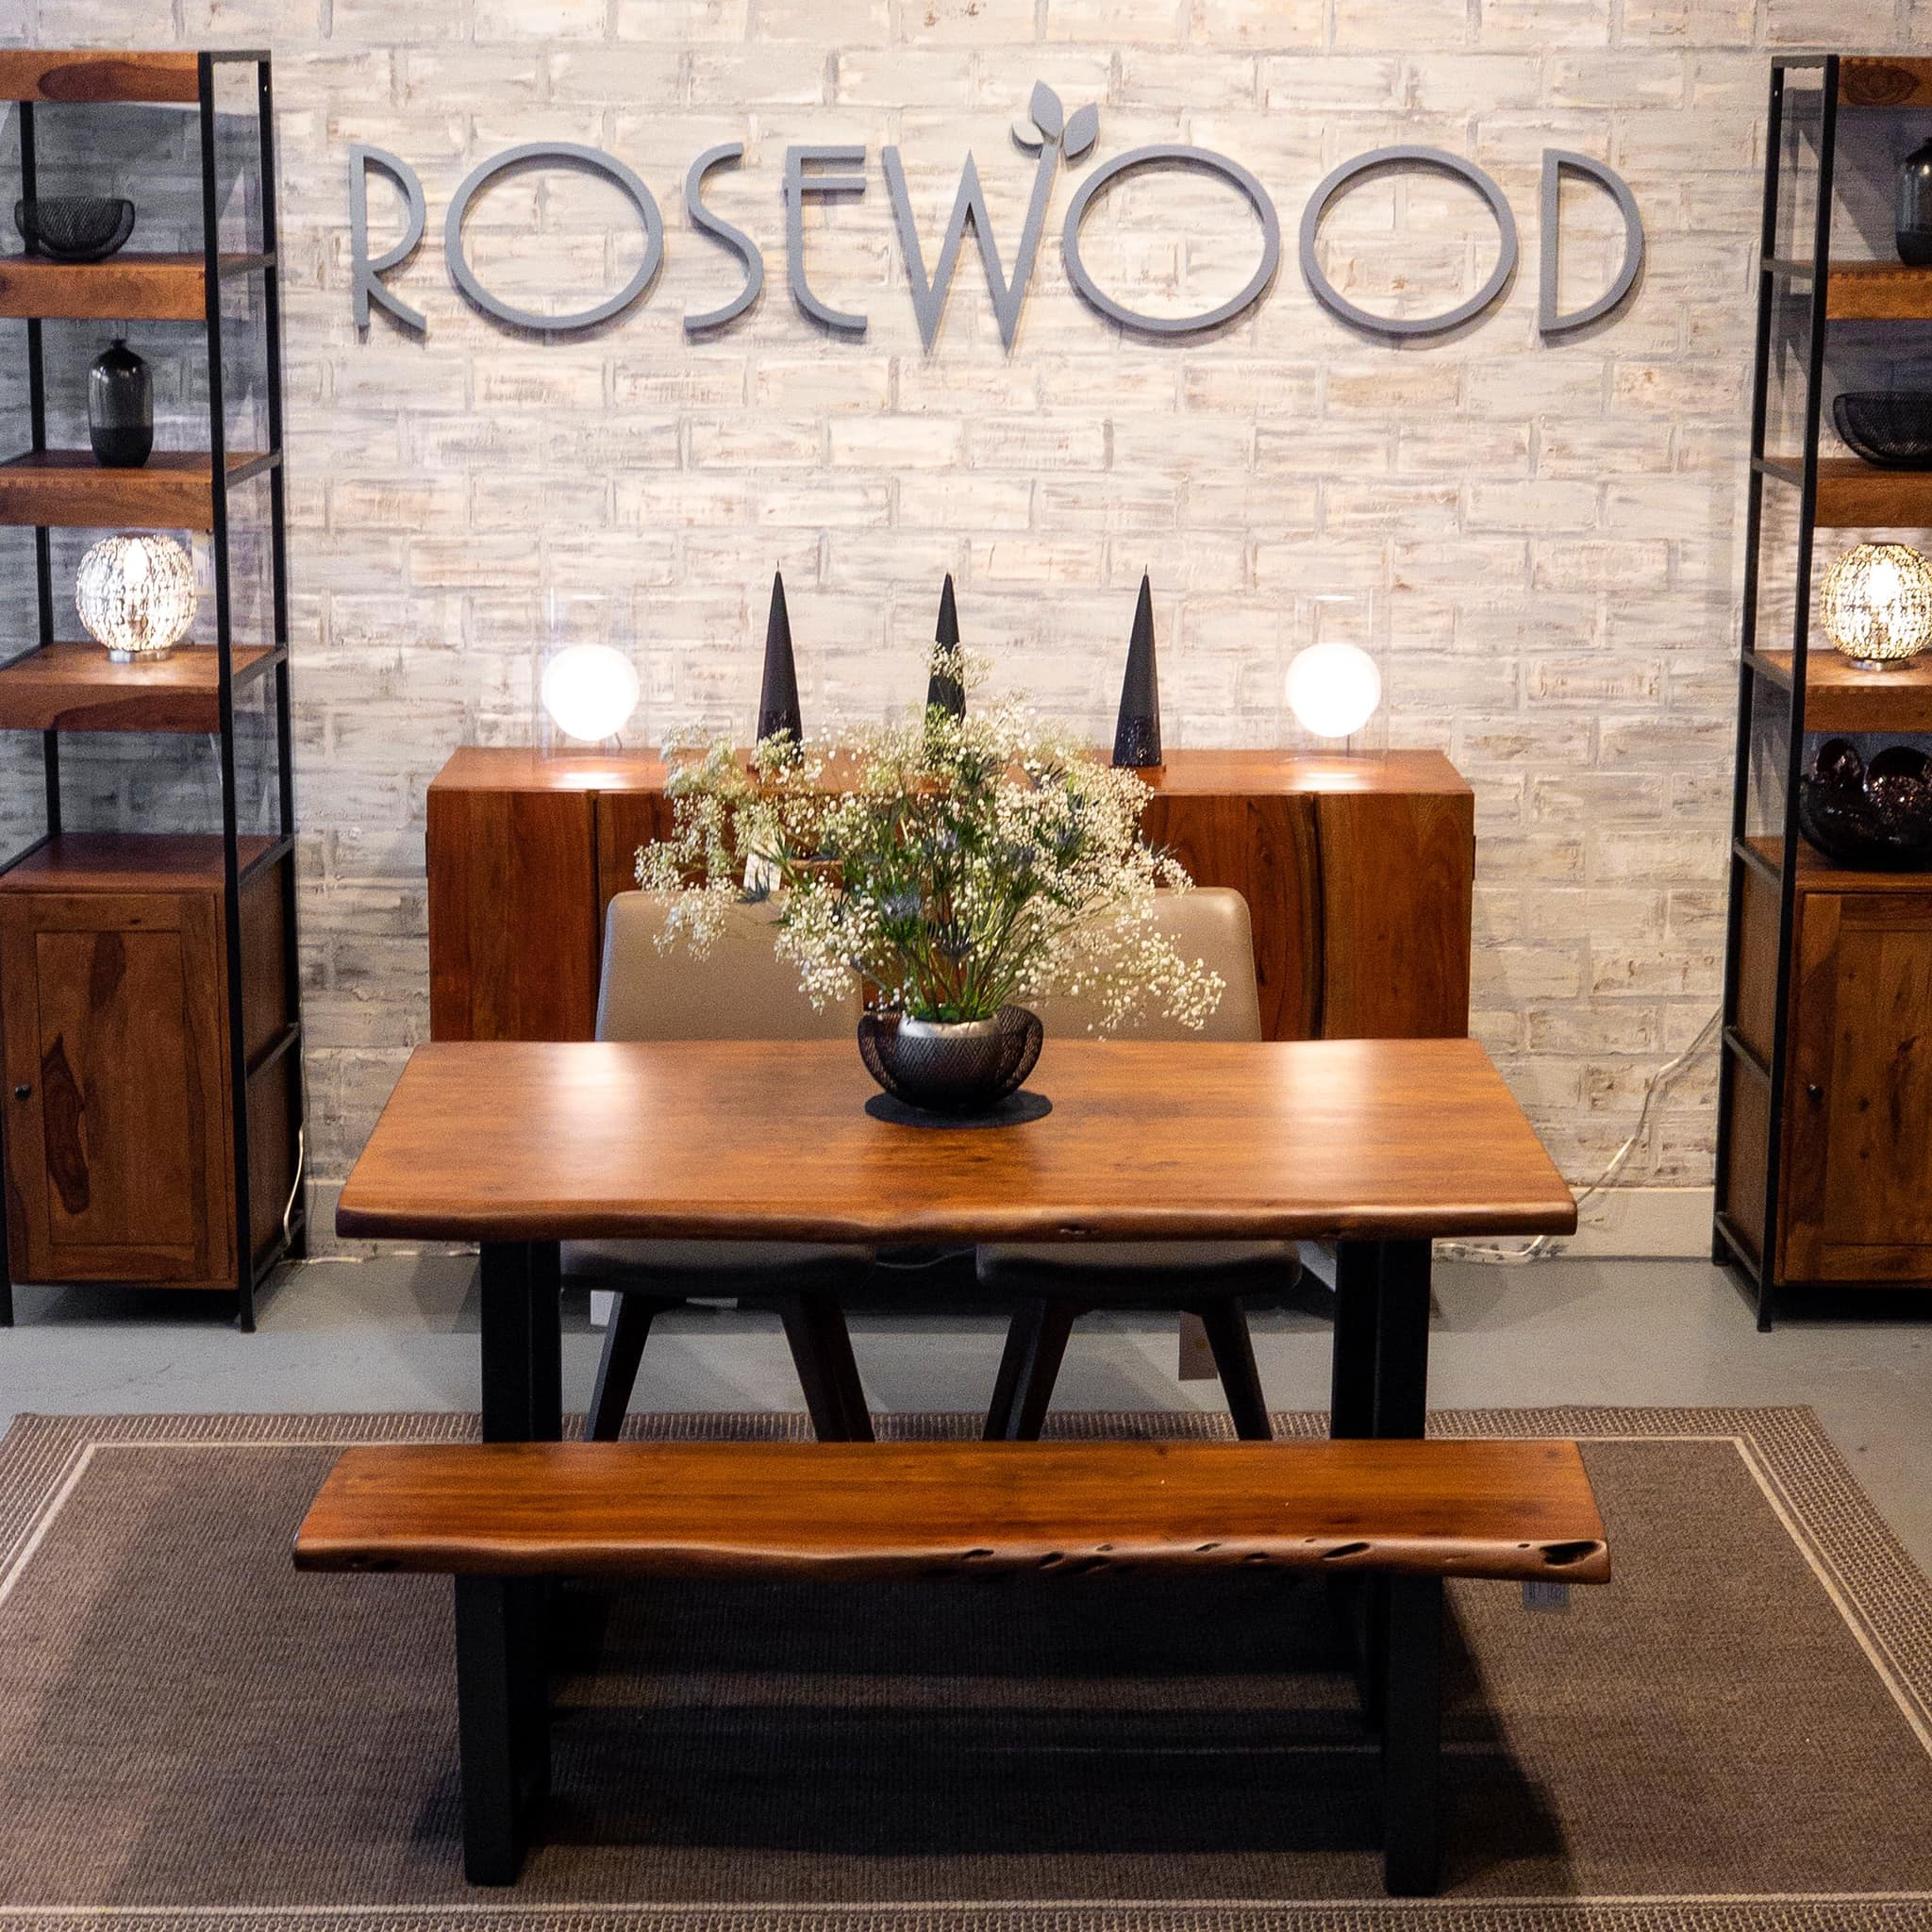 Rosewood-hardwood-furniture